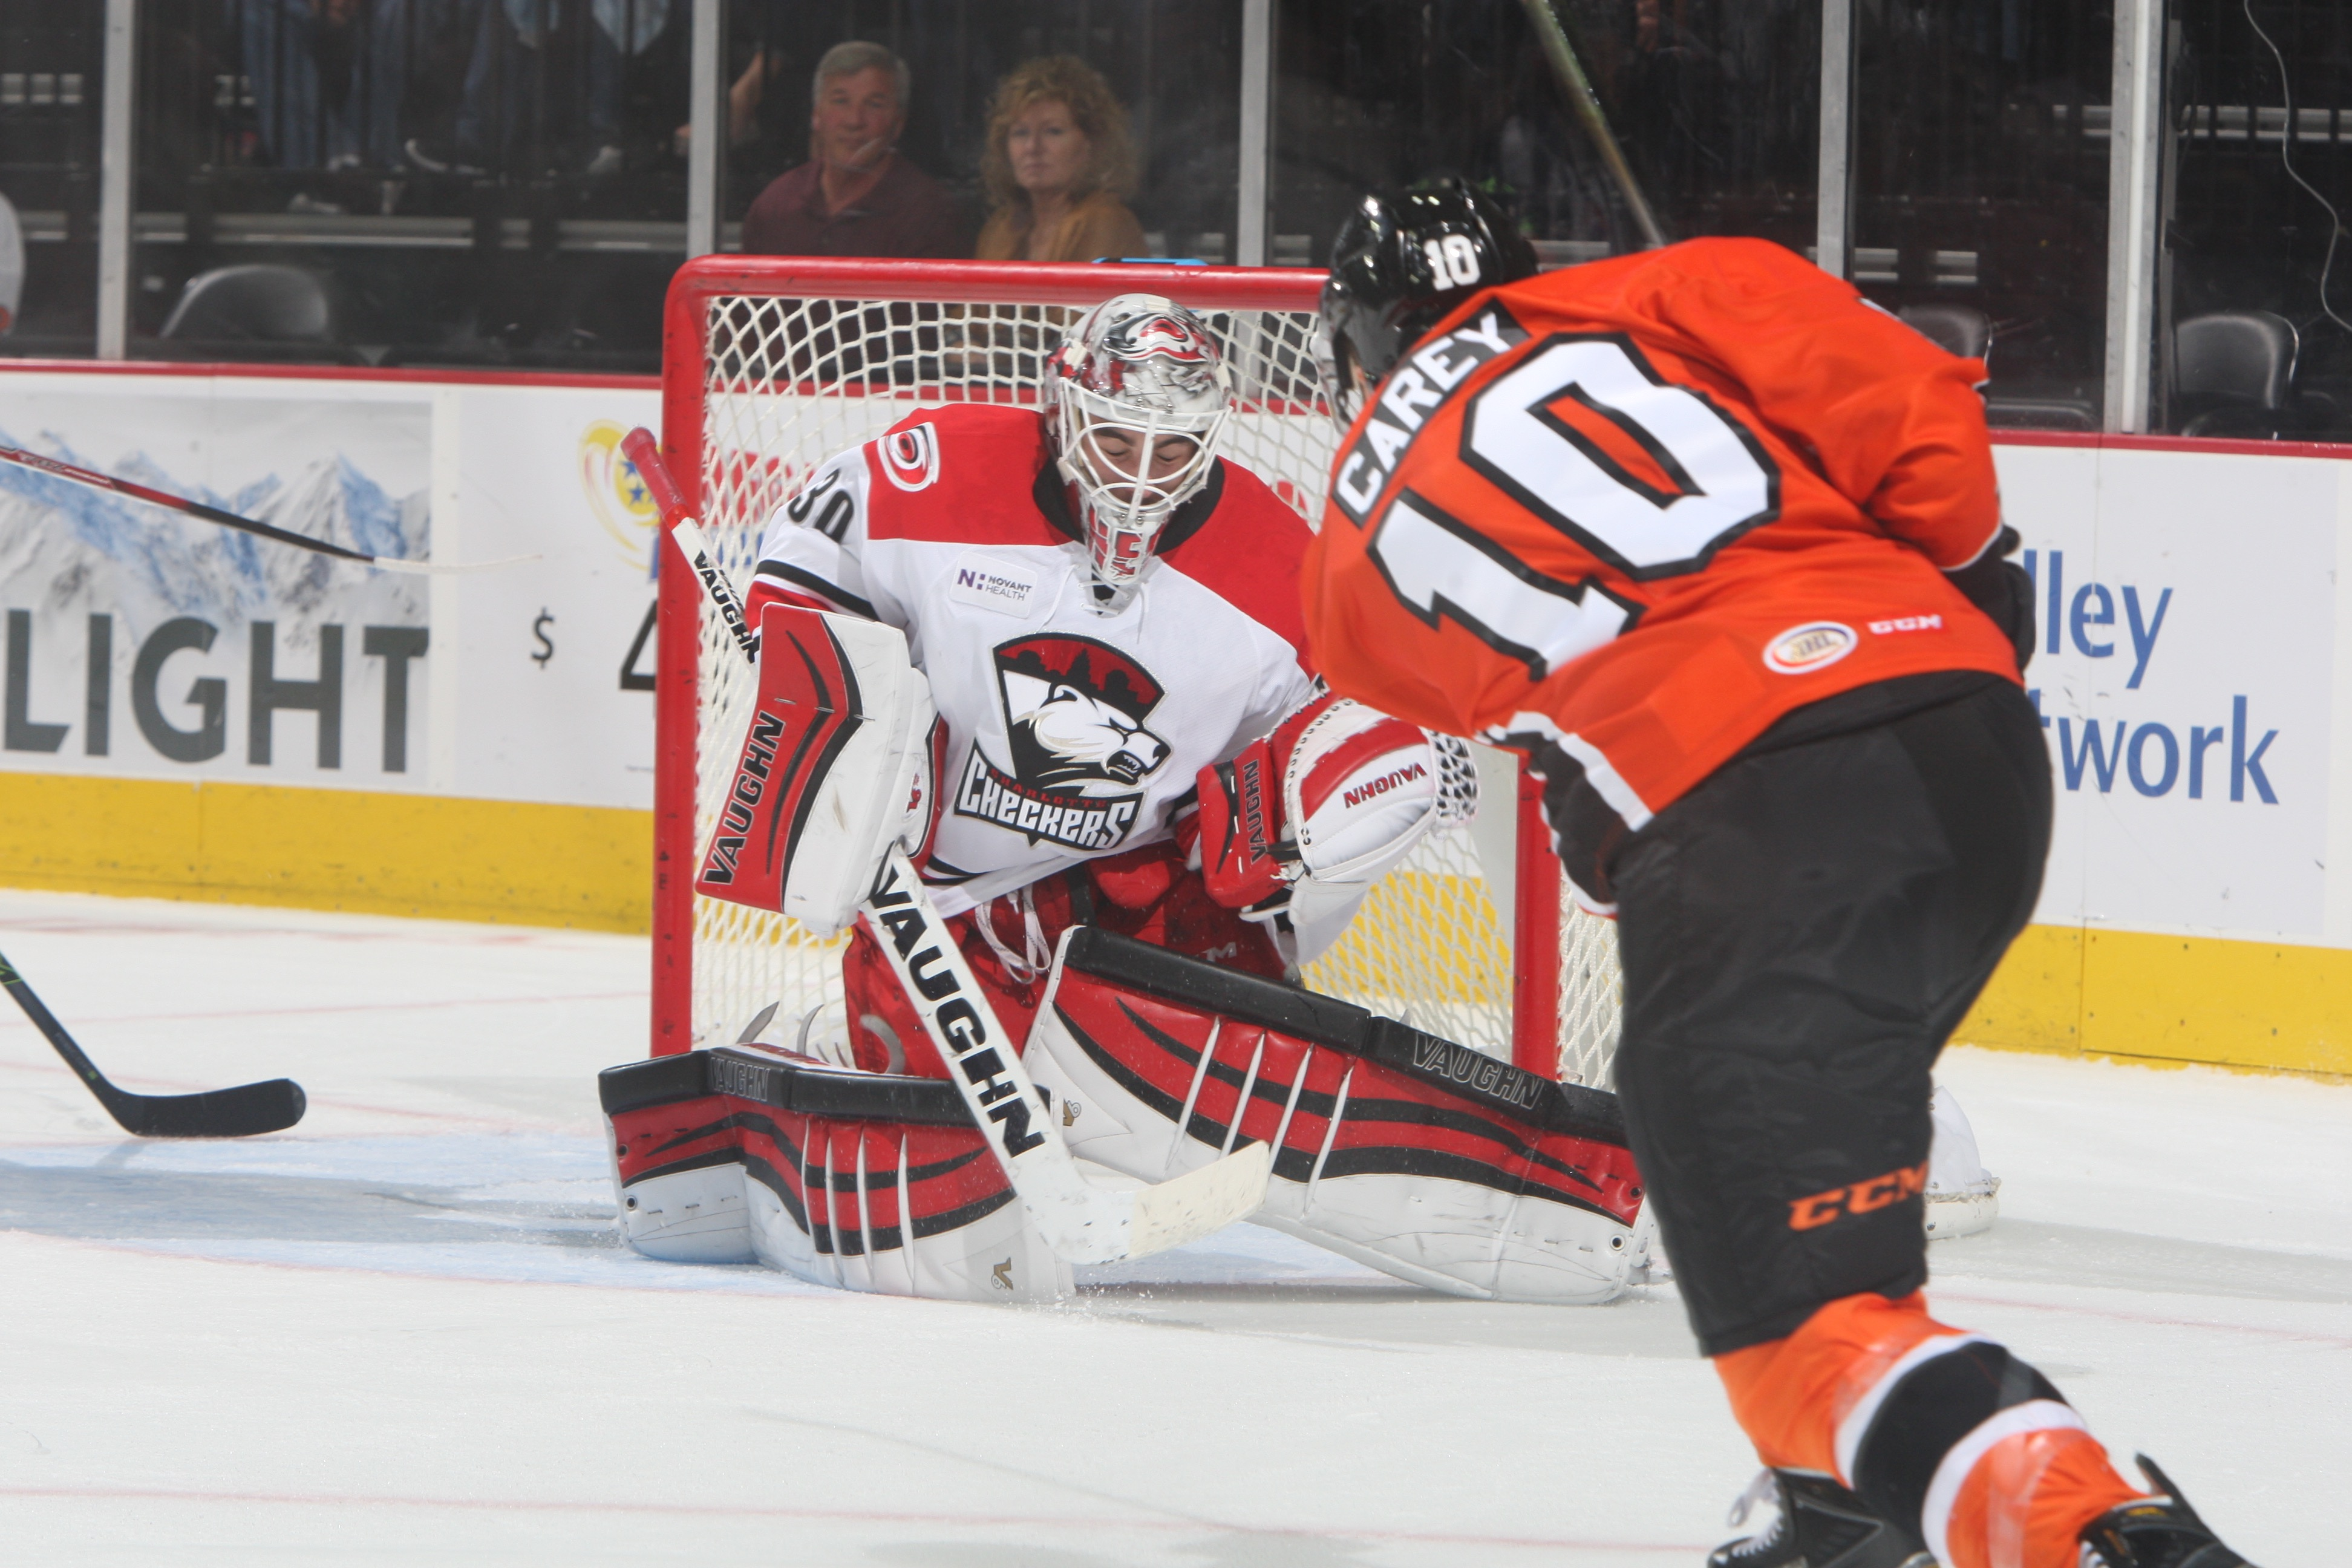 Fans Get First Glimpse Of 2016 17 Phantoms As Ahl Hockey Returns To